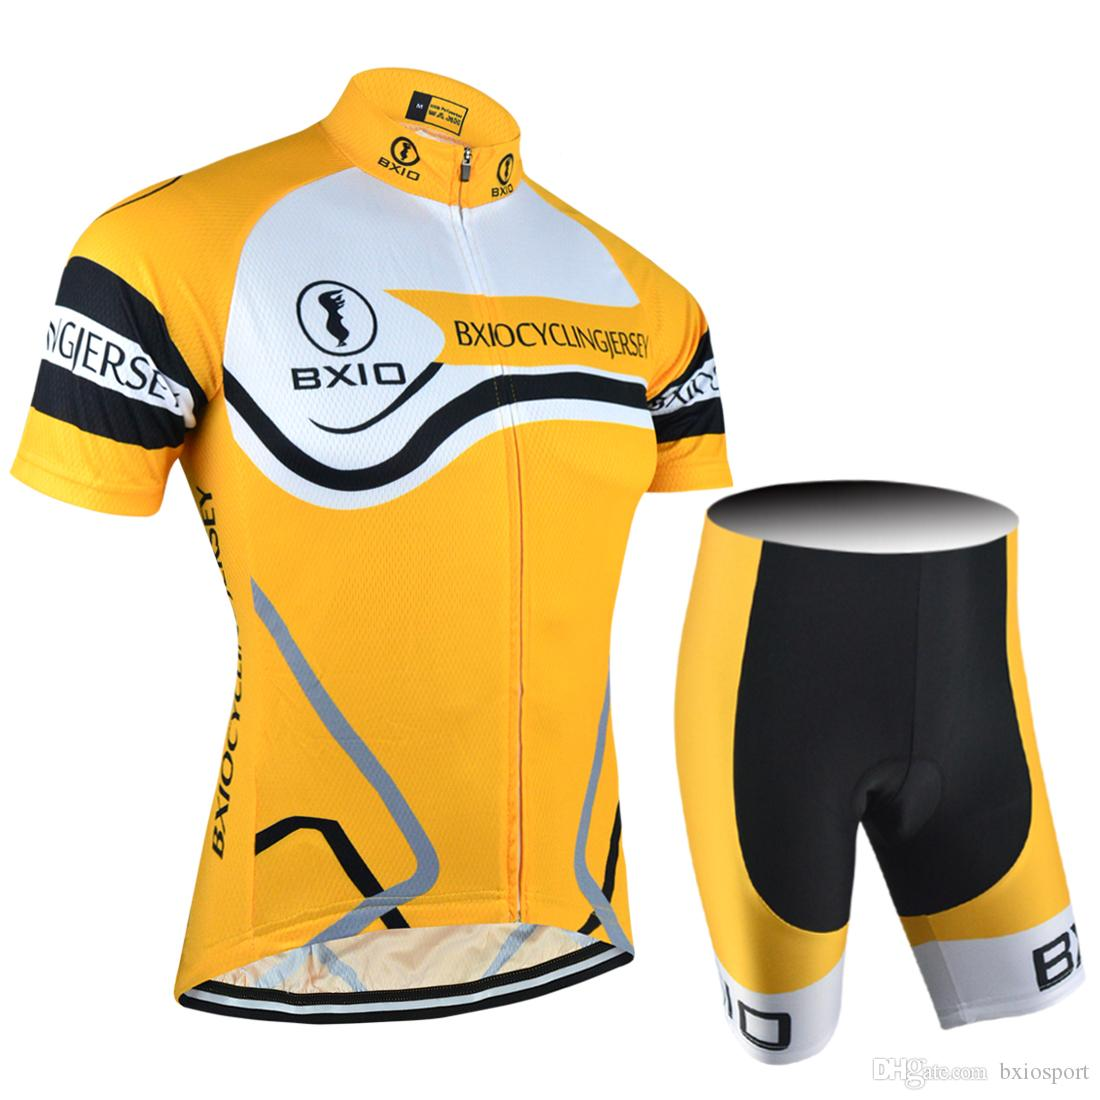 BXIO Orange Bright Cycling Jerseys Can Be Choose Bibs Or No Bibs Men ... 5a2248f48